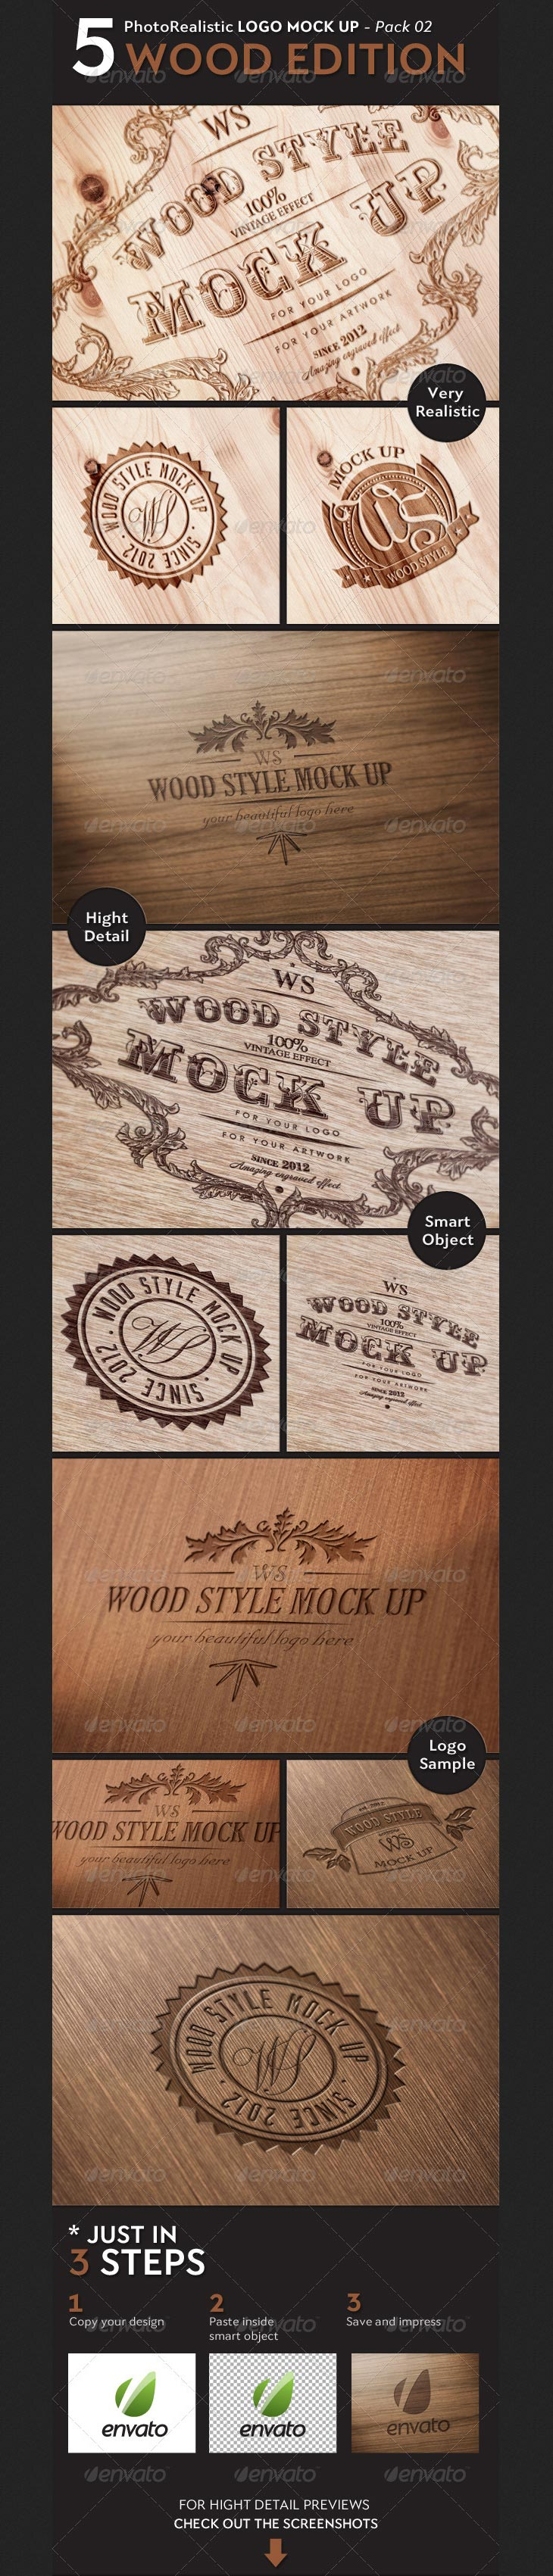 5 Realistic Logo Mock Up - WOOD Edition